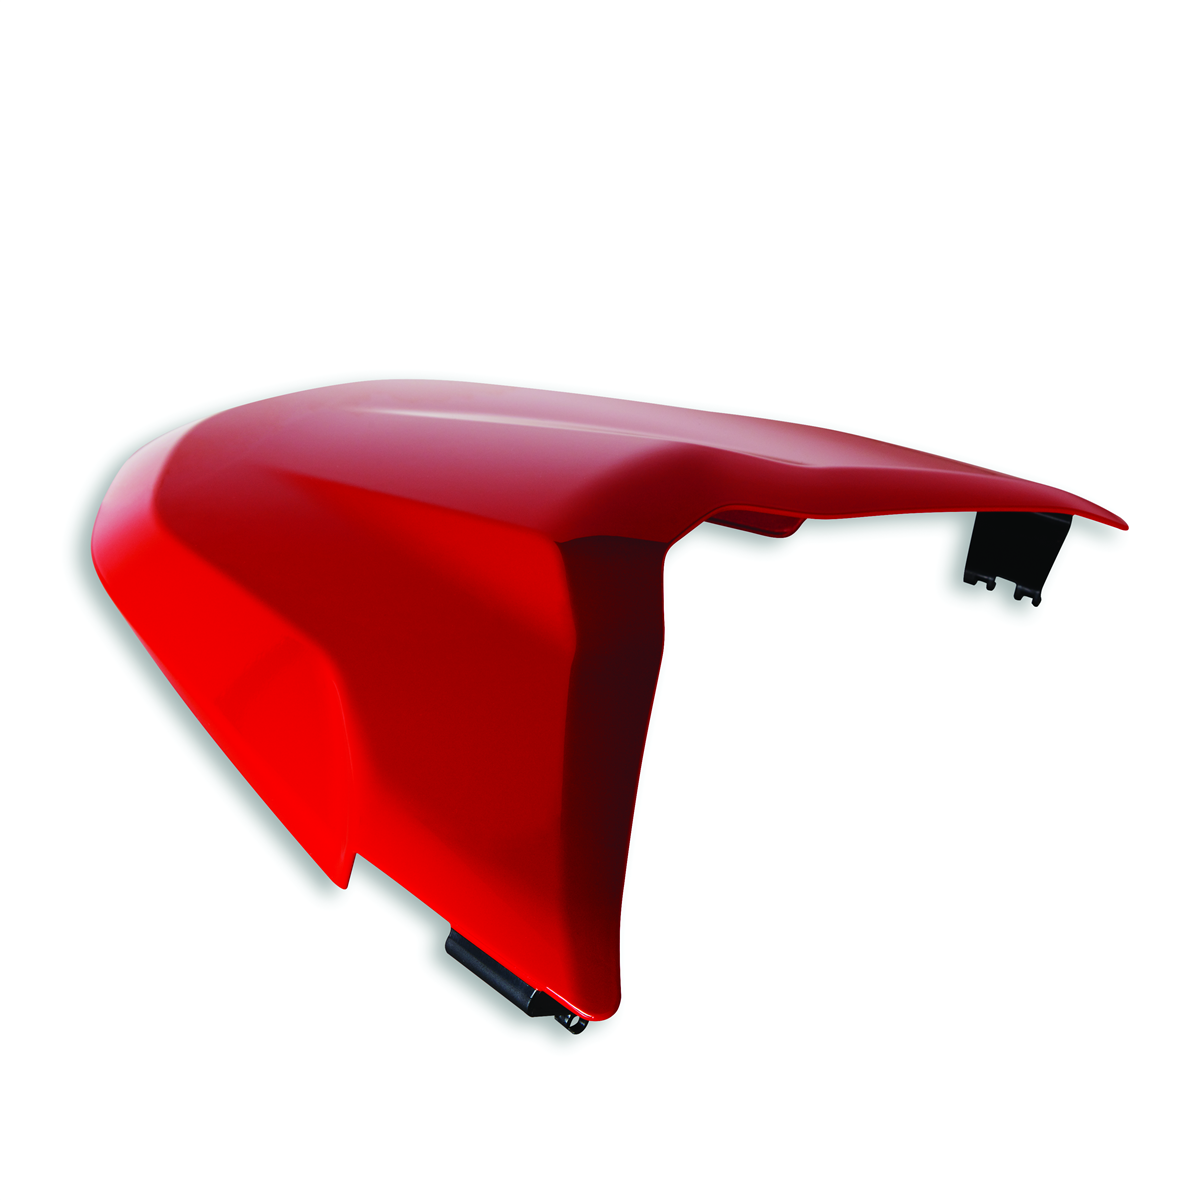 Cache-selle passager rouge (97180531A)